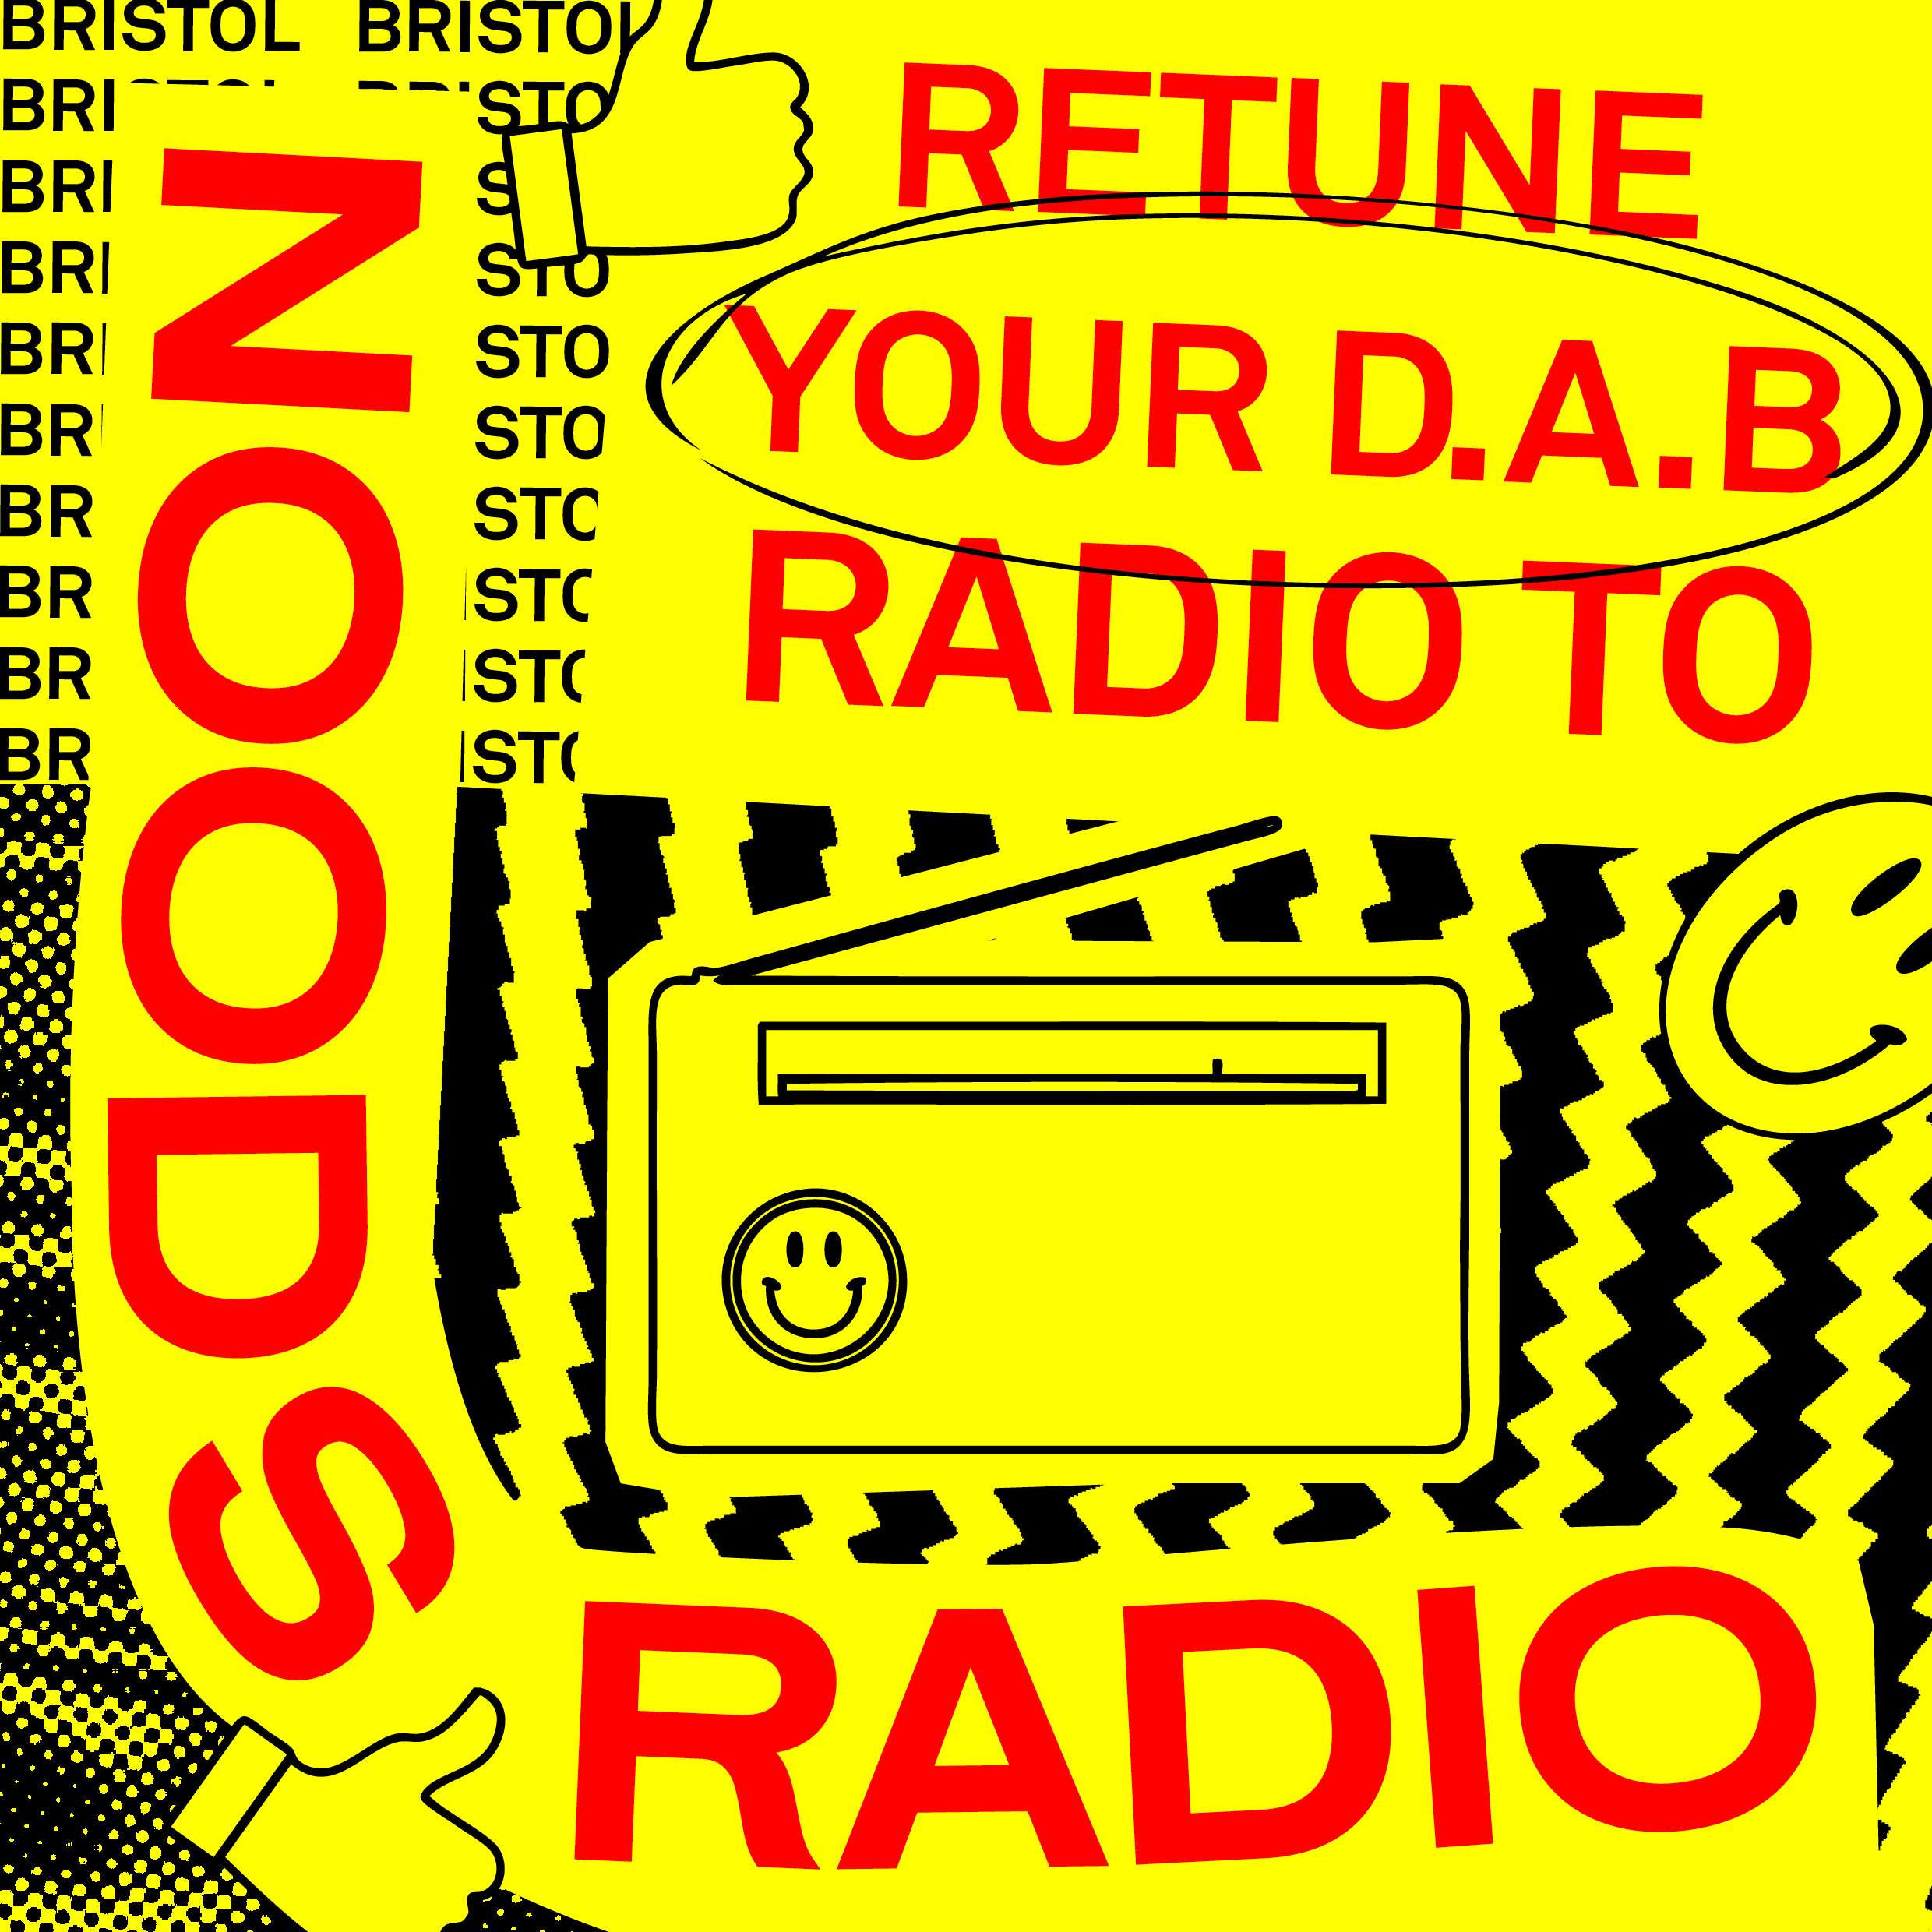 Noods Radio to launch DAB radio station